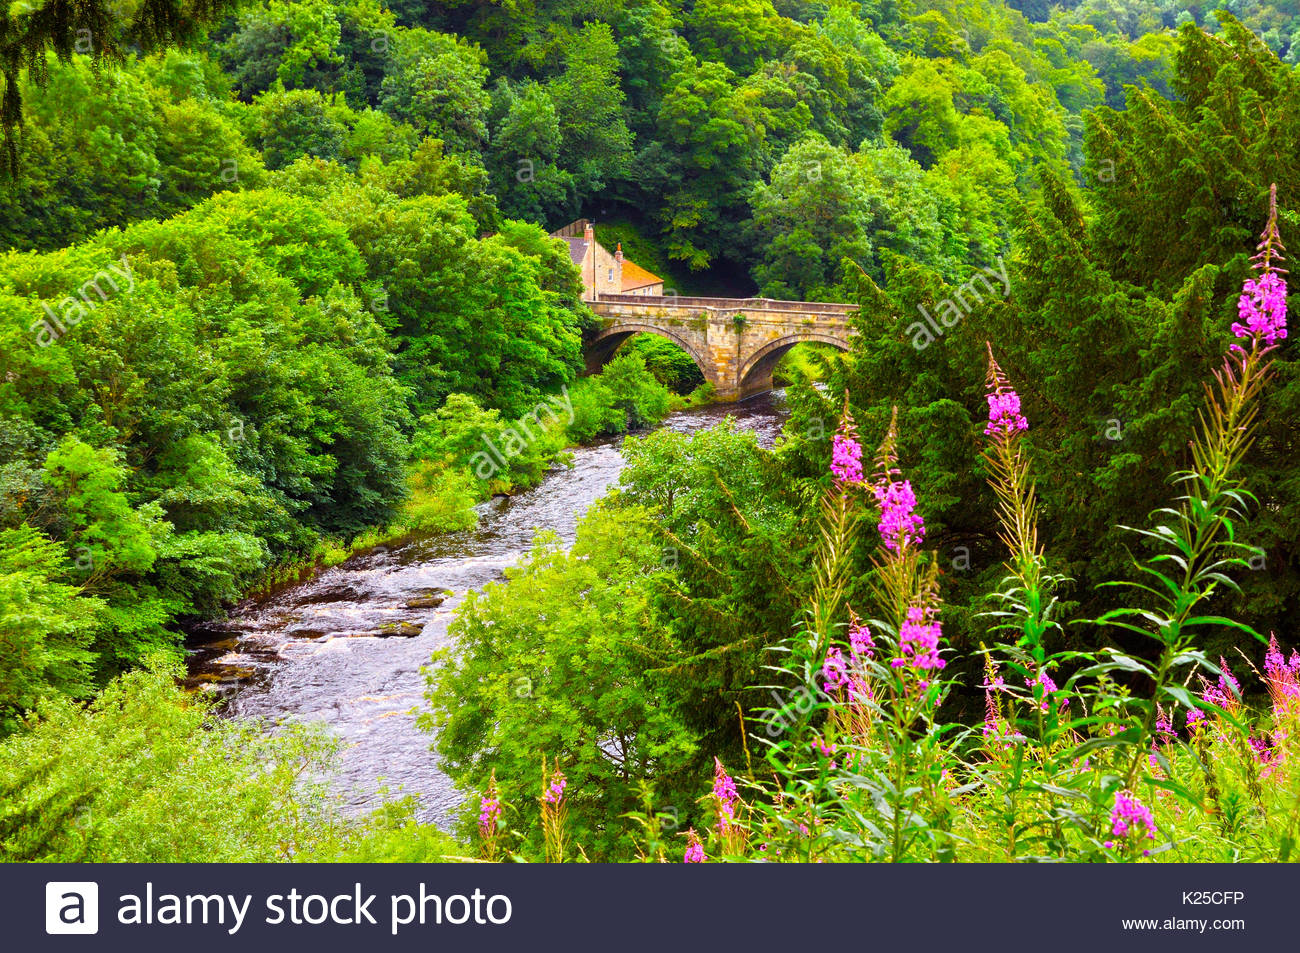 The Green Bridge and River Swale, Richmond, North Yorkshire, UK Stock Photo